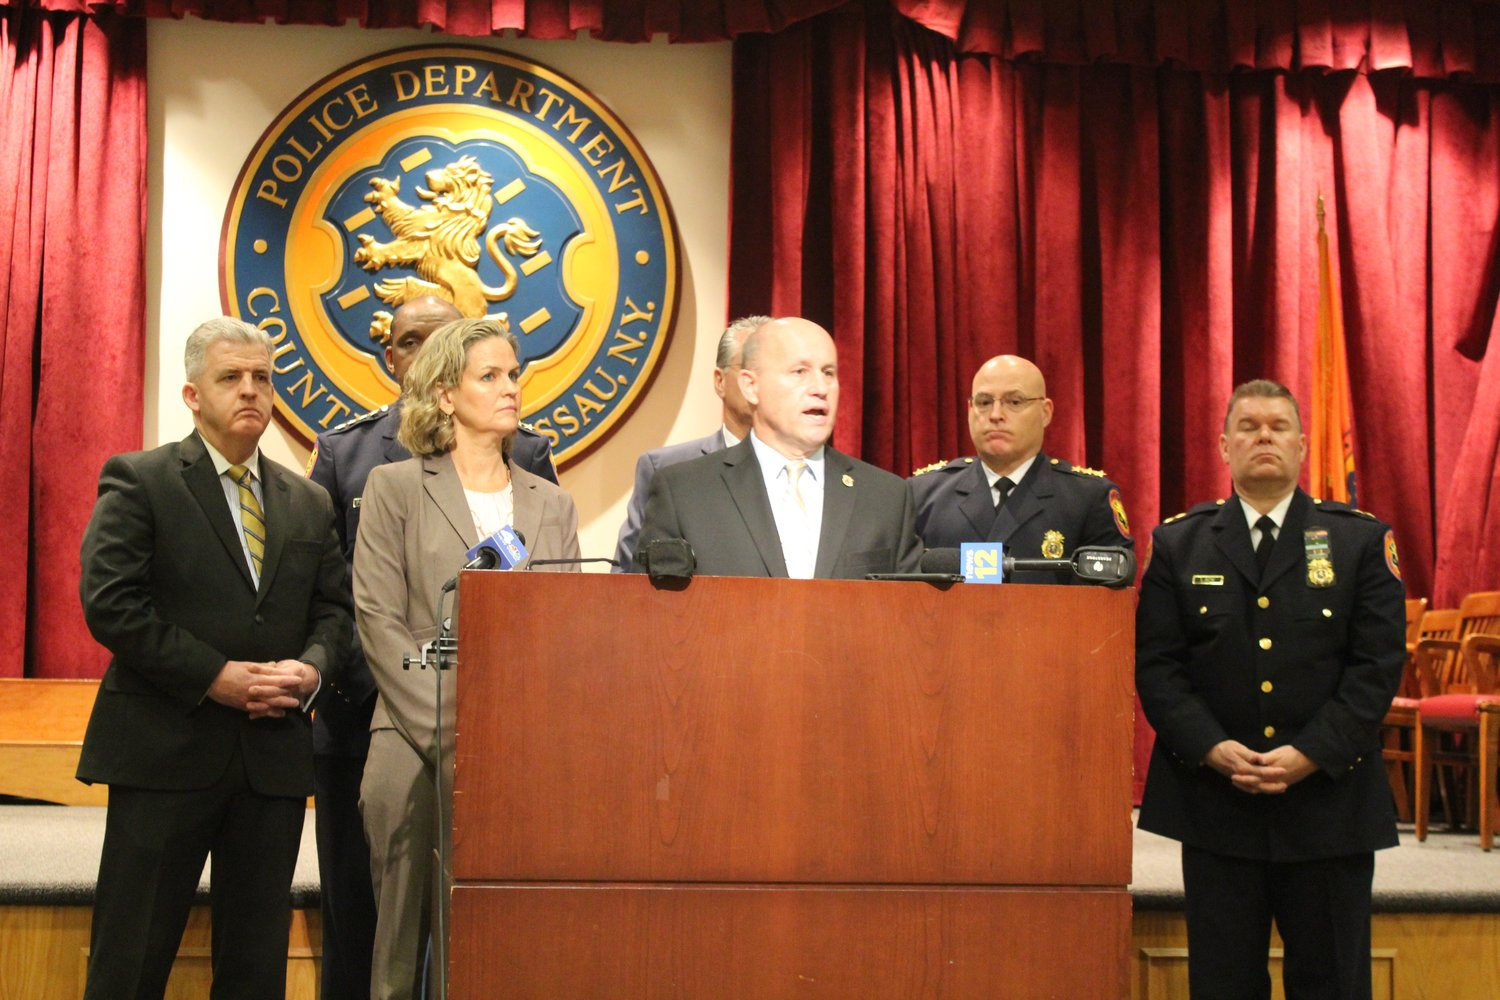 Nassau County Police Commissioner Patrick Ryder outlined drops in crime and announced two new special units at a news conference on Jan. 9. Nassau County Executive Laura Curran is to Ryder's immediate right.